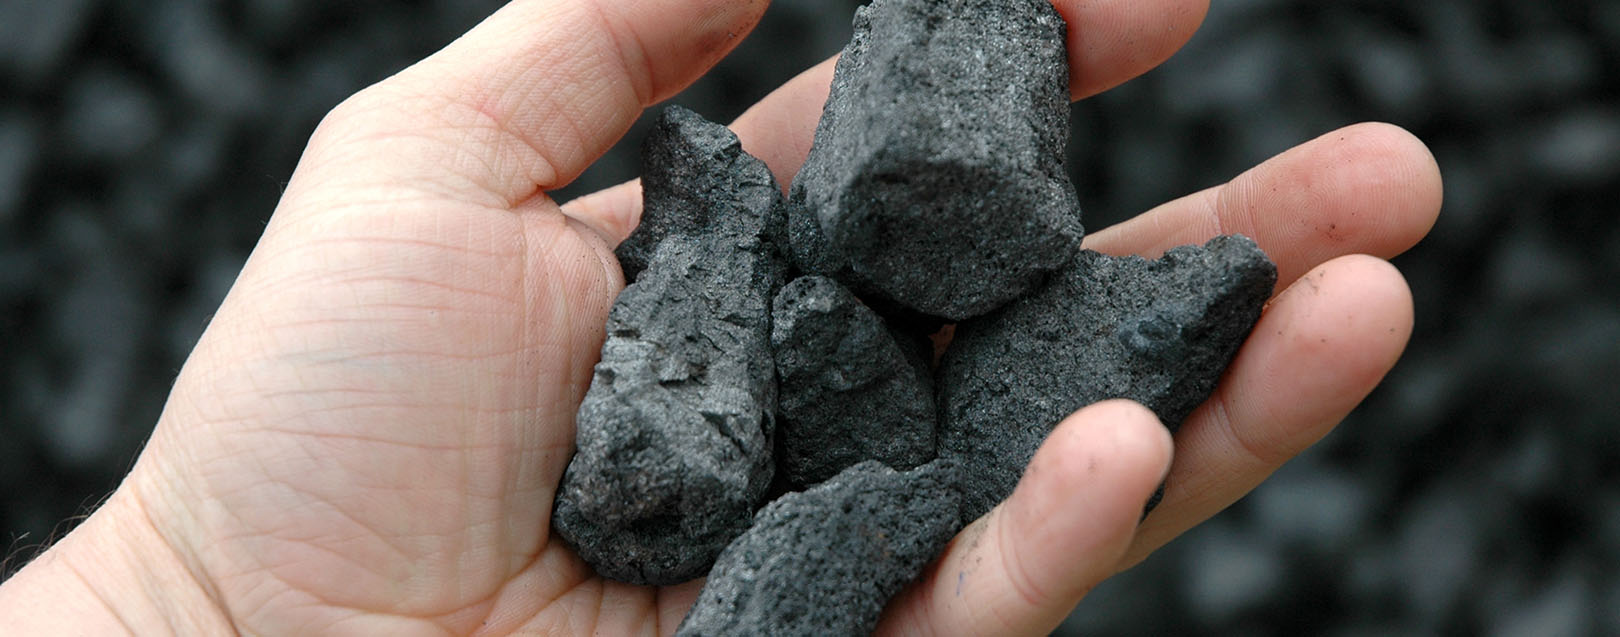 Coal India zeroes in on Australia and South Africa for acquisitions